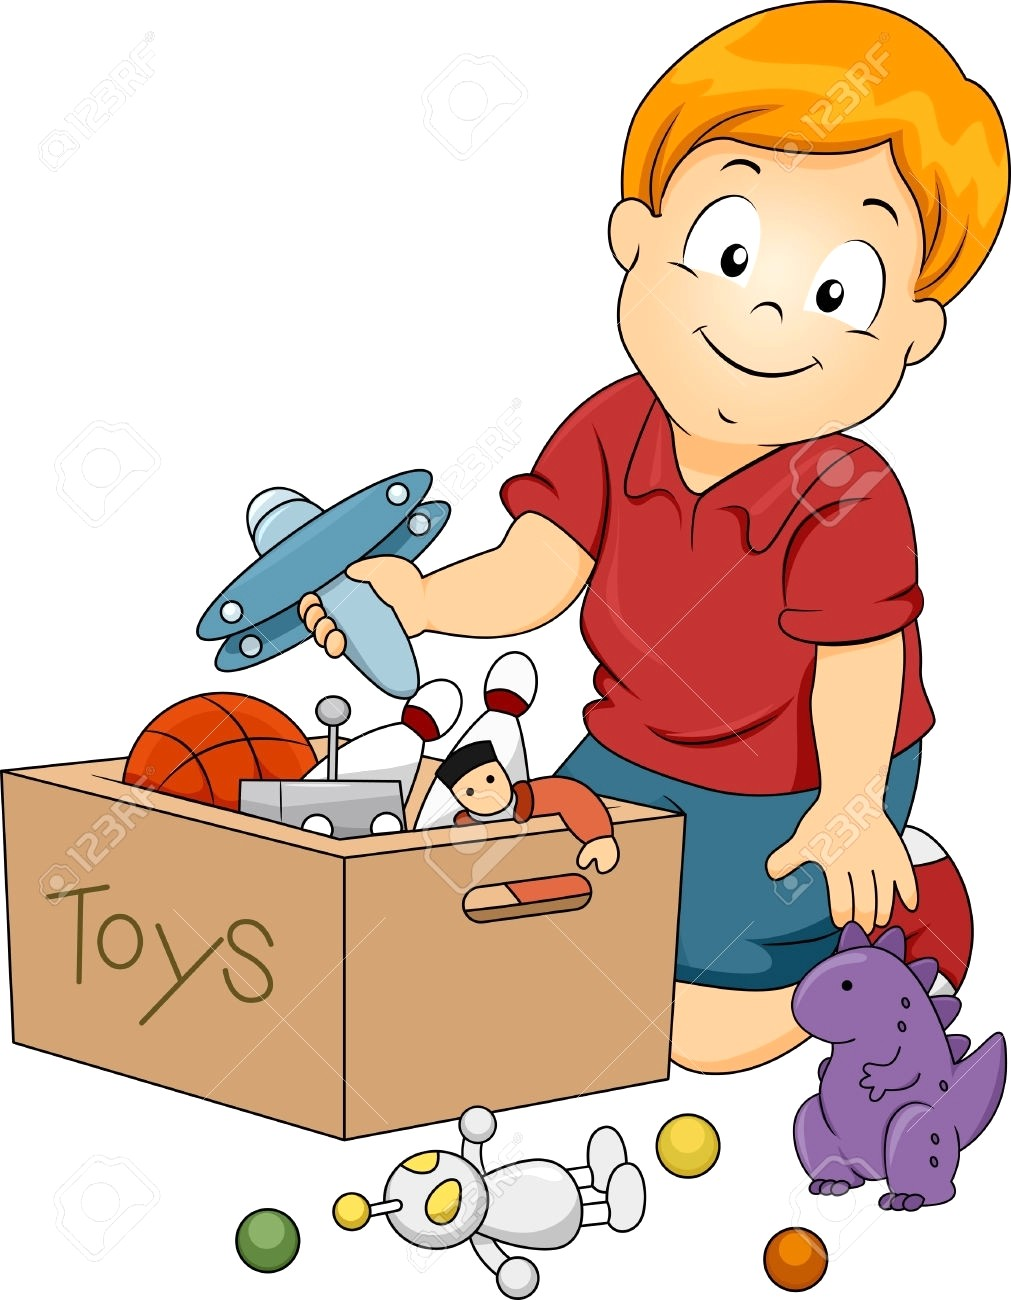 Pick it up clipart clip freeuse download Picking up toys clipart » Clipart Station clip freeuse download